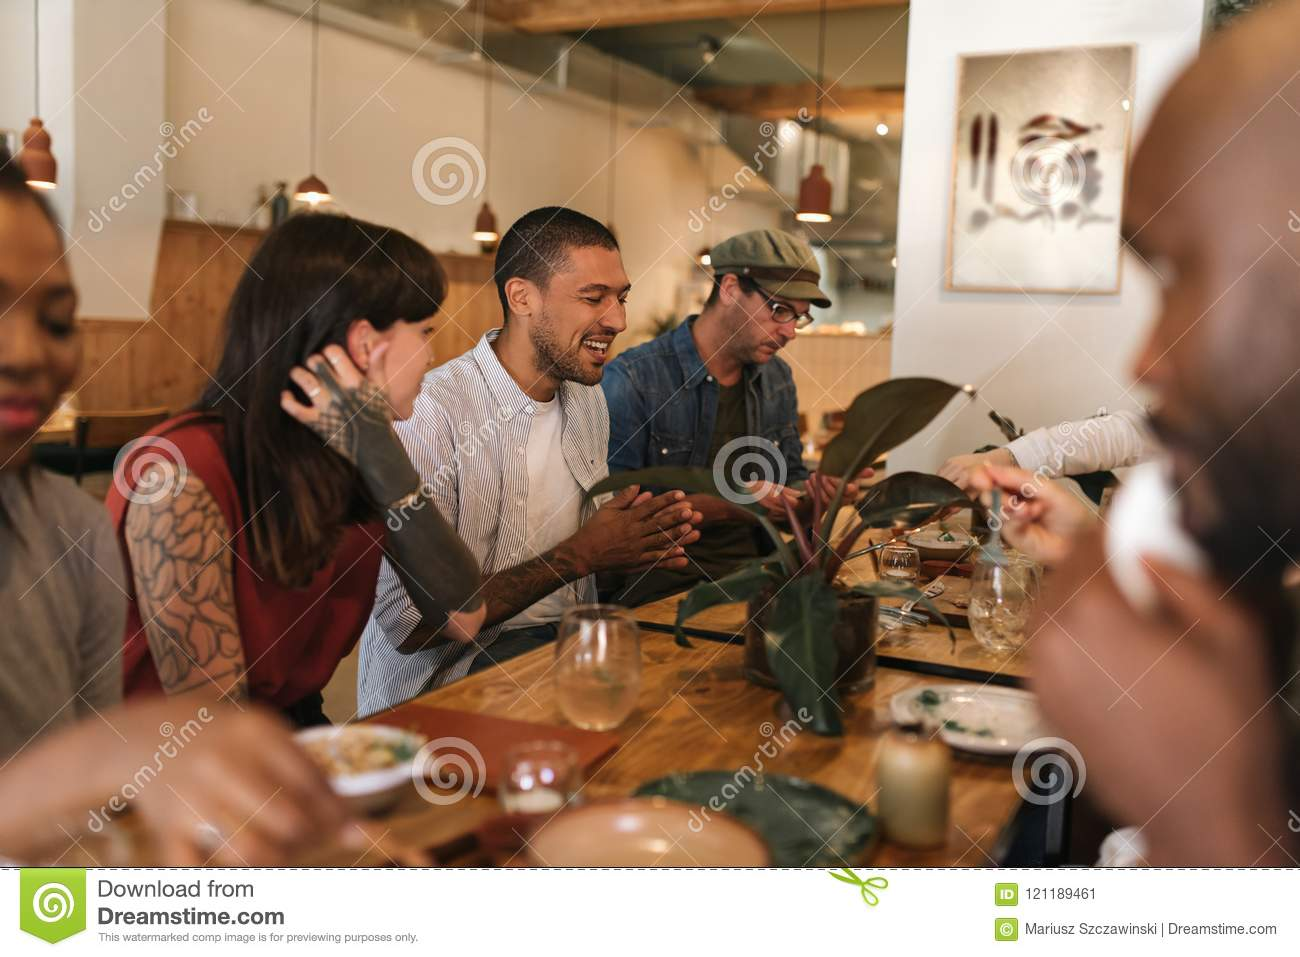 Diverse young friends having fun together over a bistro dinner